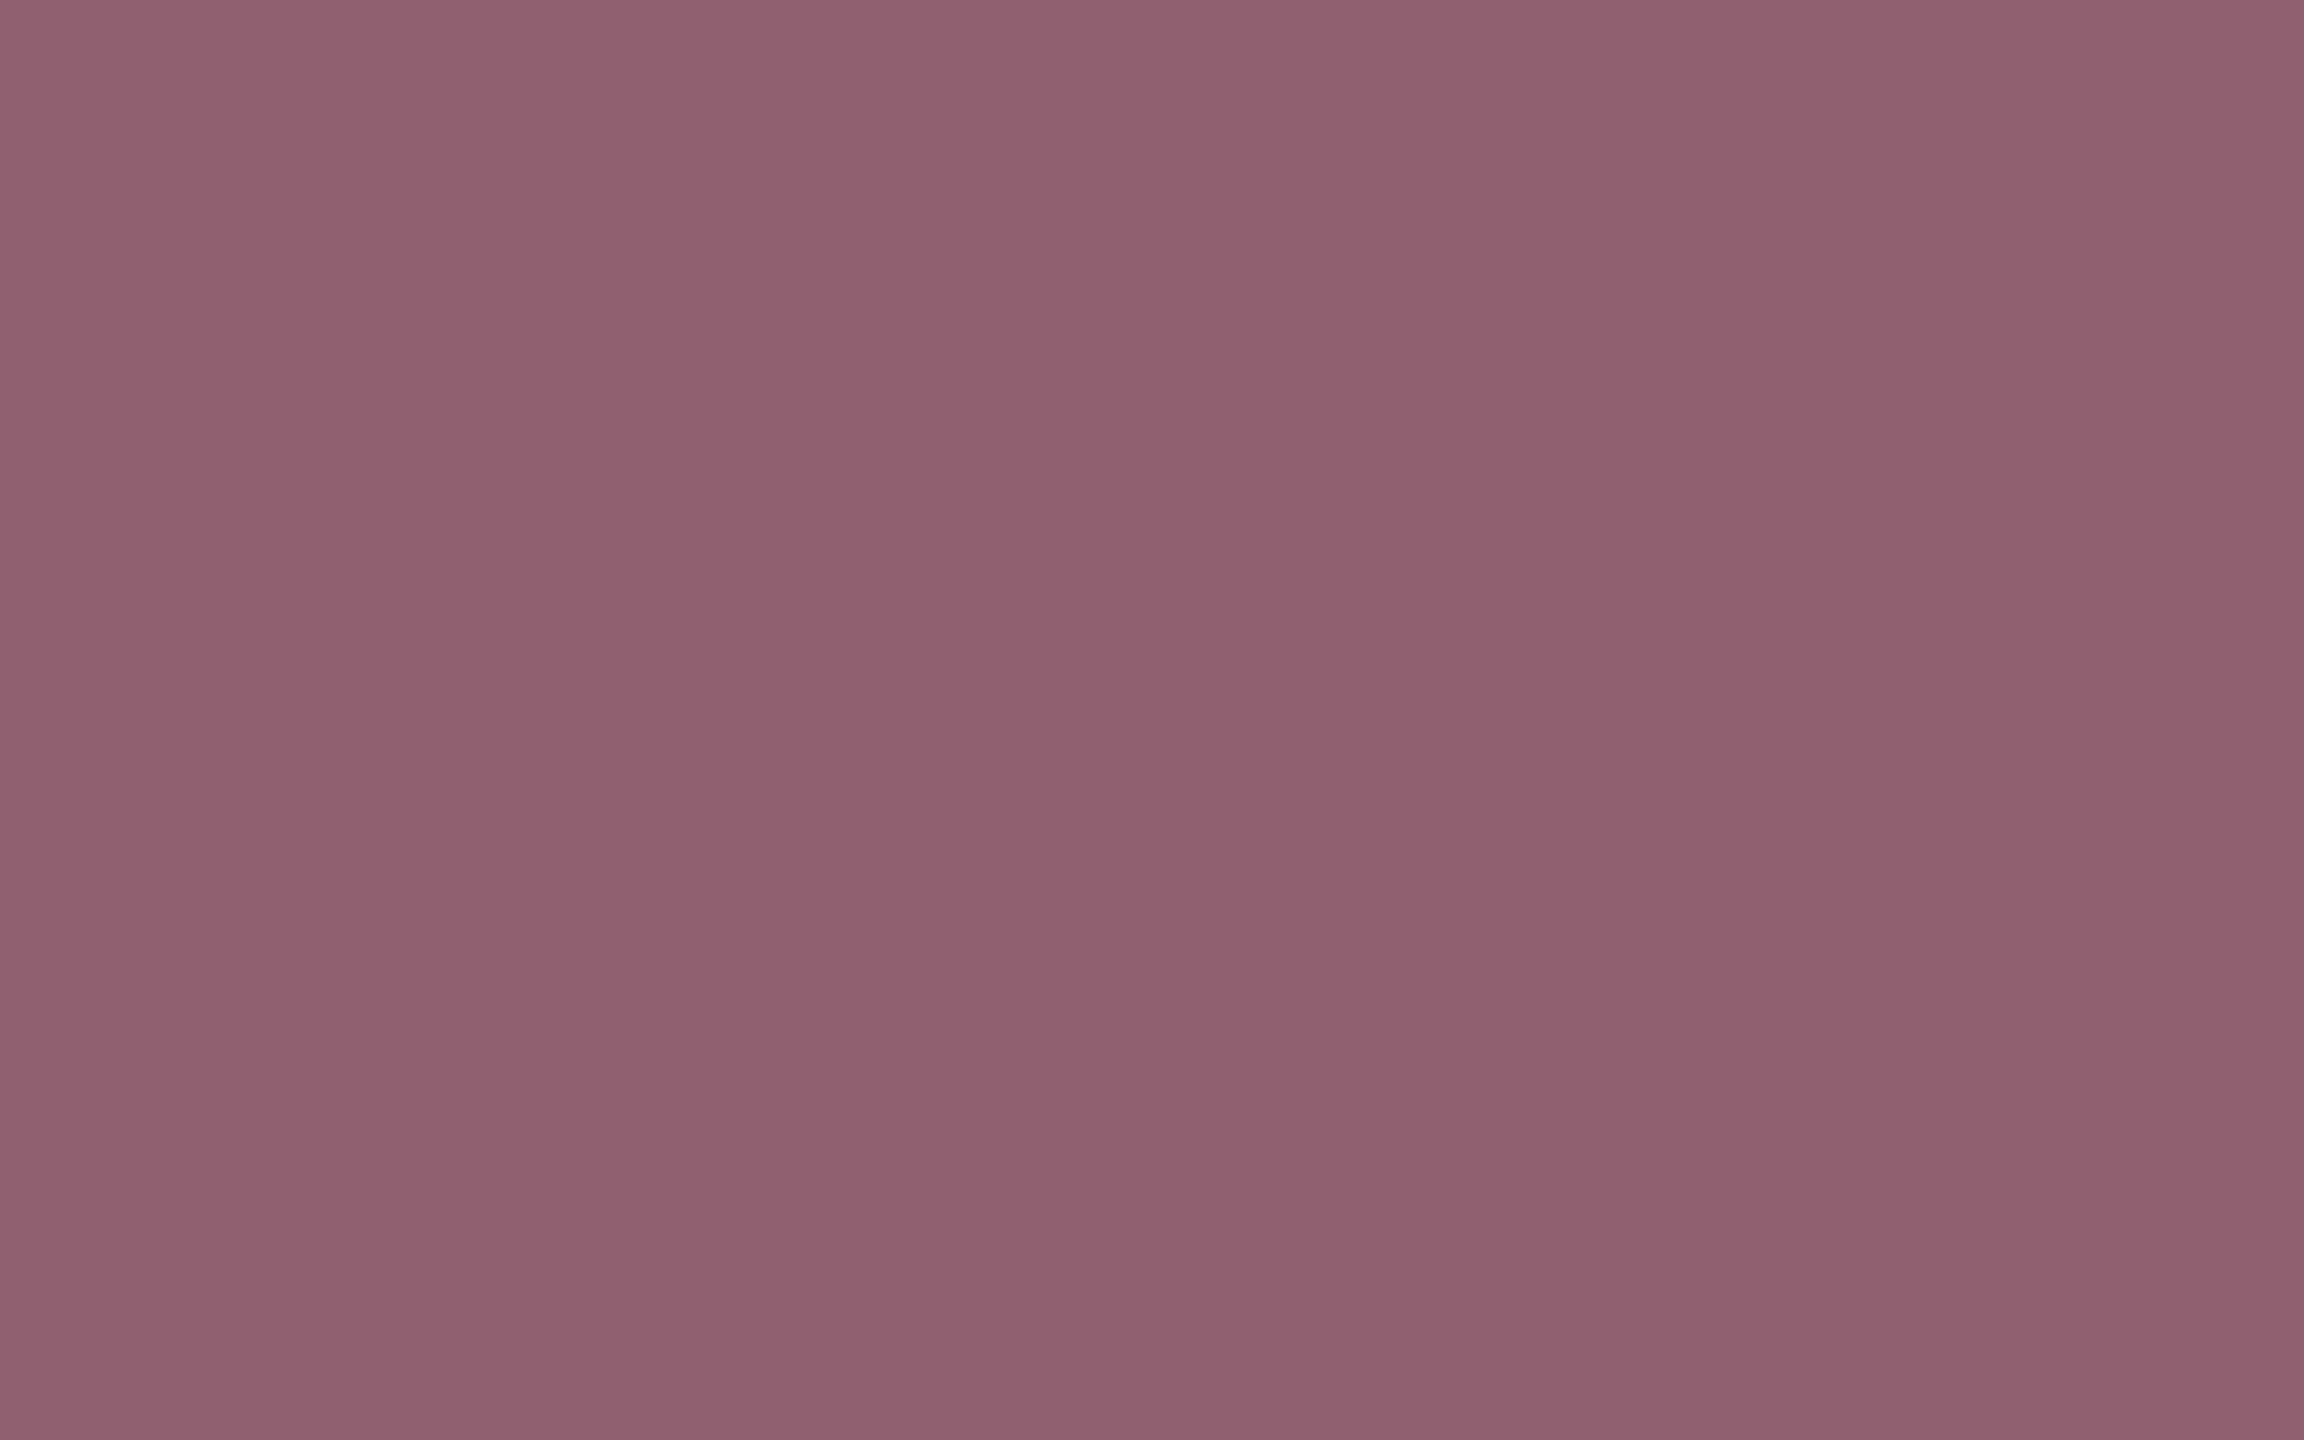 2304x1440 Raspberry Glace Solid Color Background